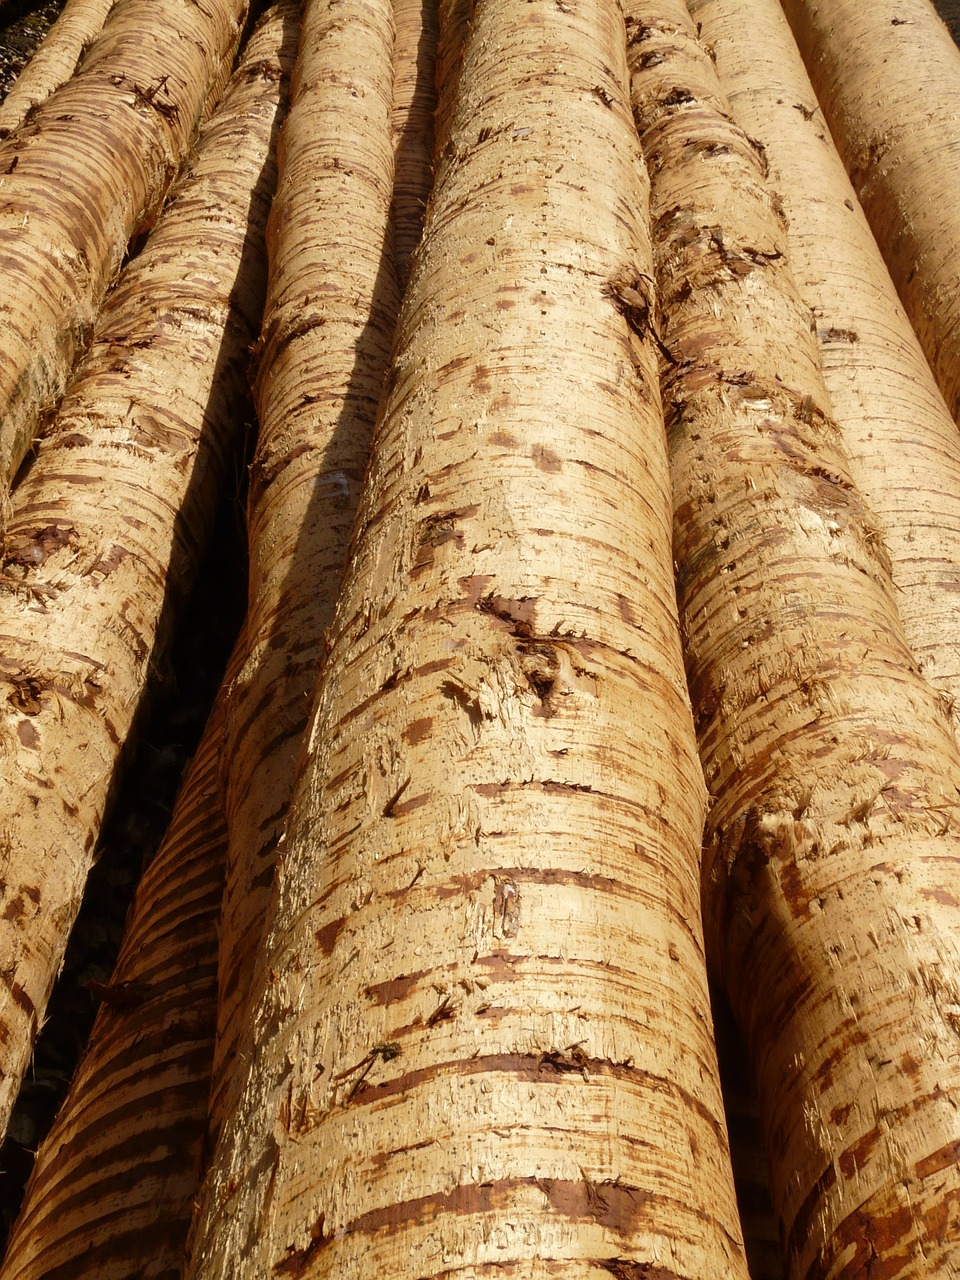 tree trunks,wood,tribe,timber,bark,material,nature,forest,tree,free pictures, free photos, free images, royalty free, free illustrations, public domain